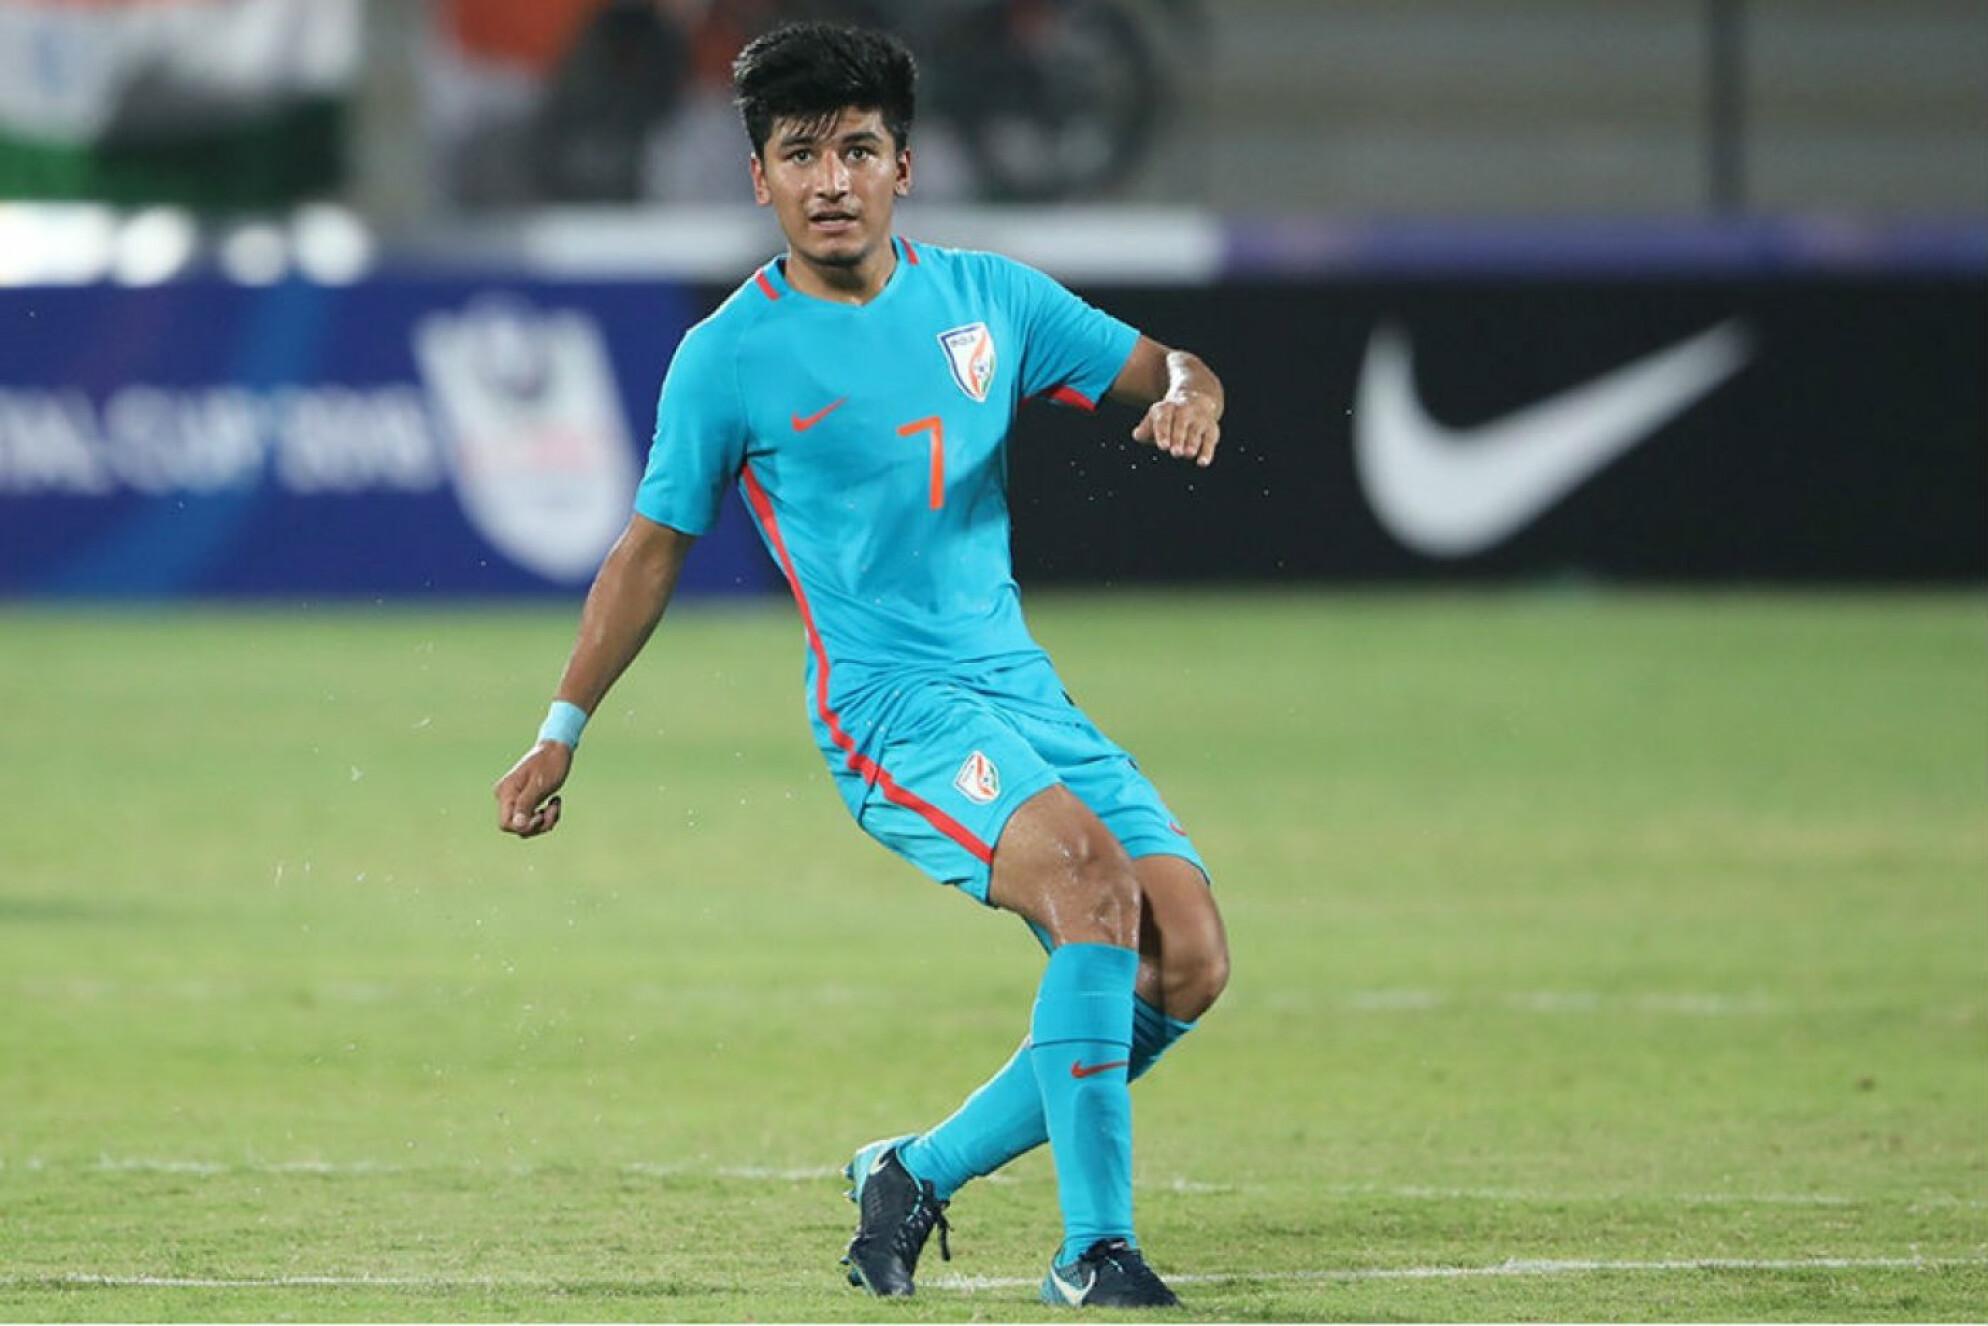 """We will fight hard"" - Anirudh Thapa"